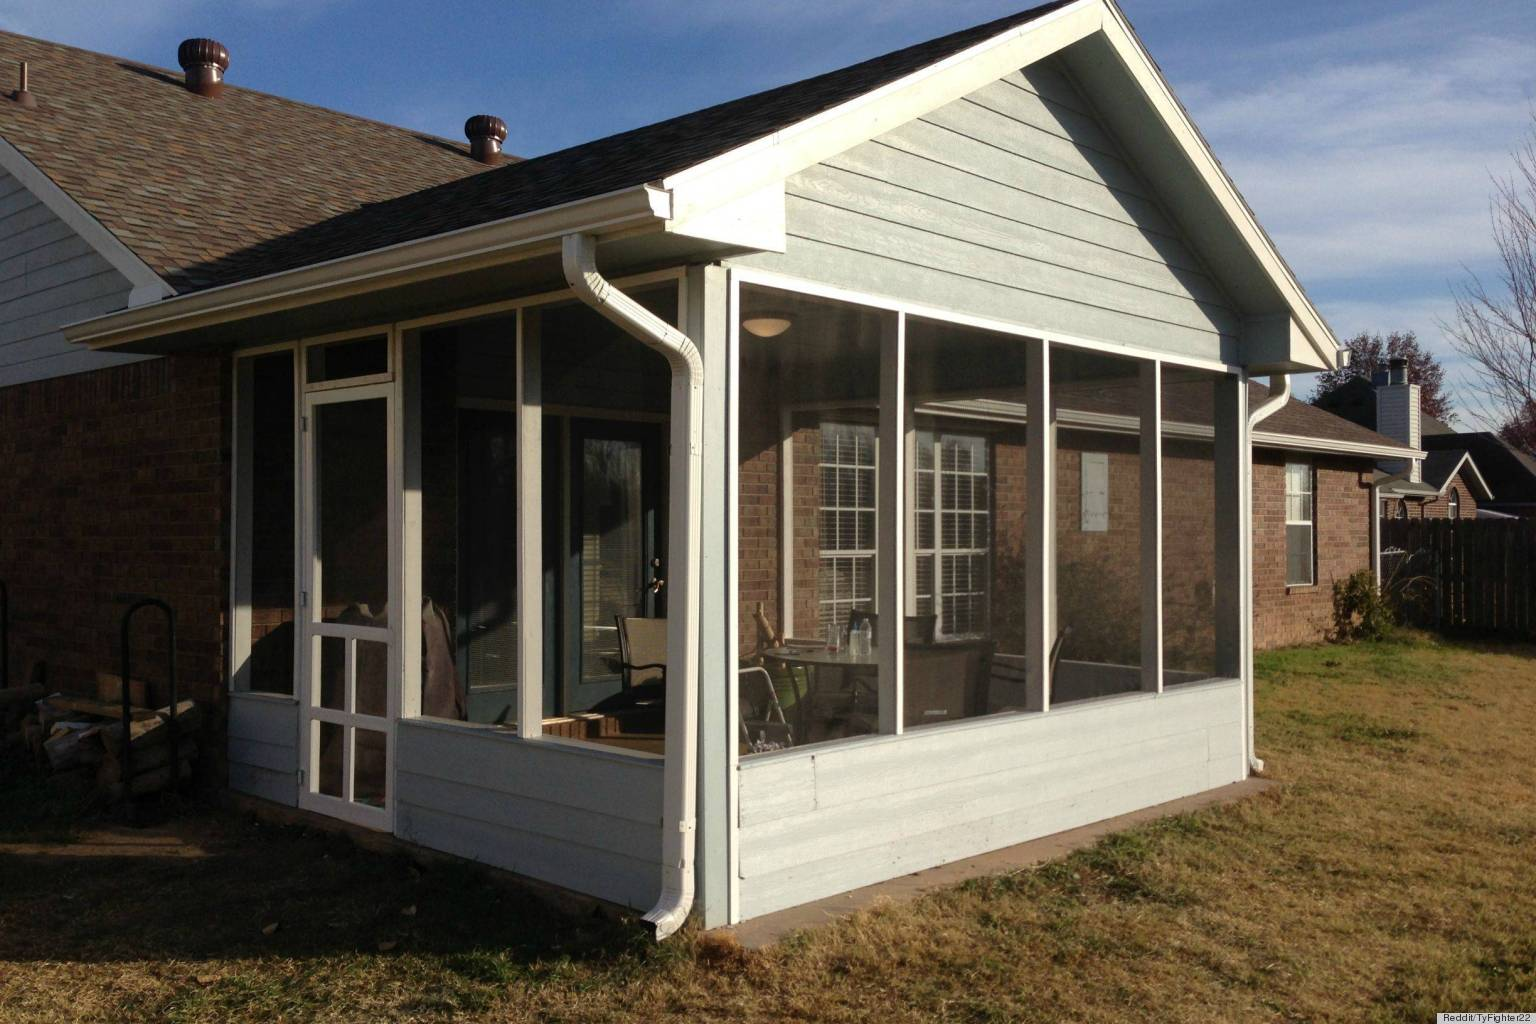 Diy Screened In Porch : Screened in patio under deck design and ideas